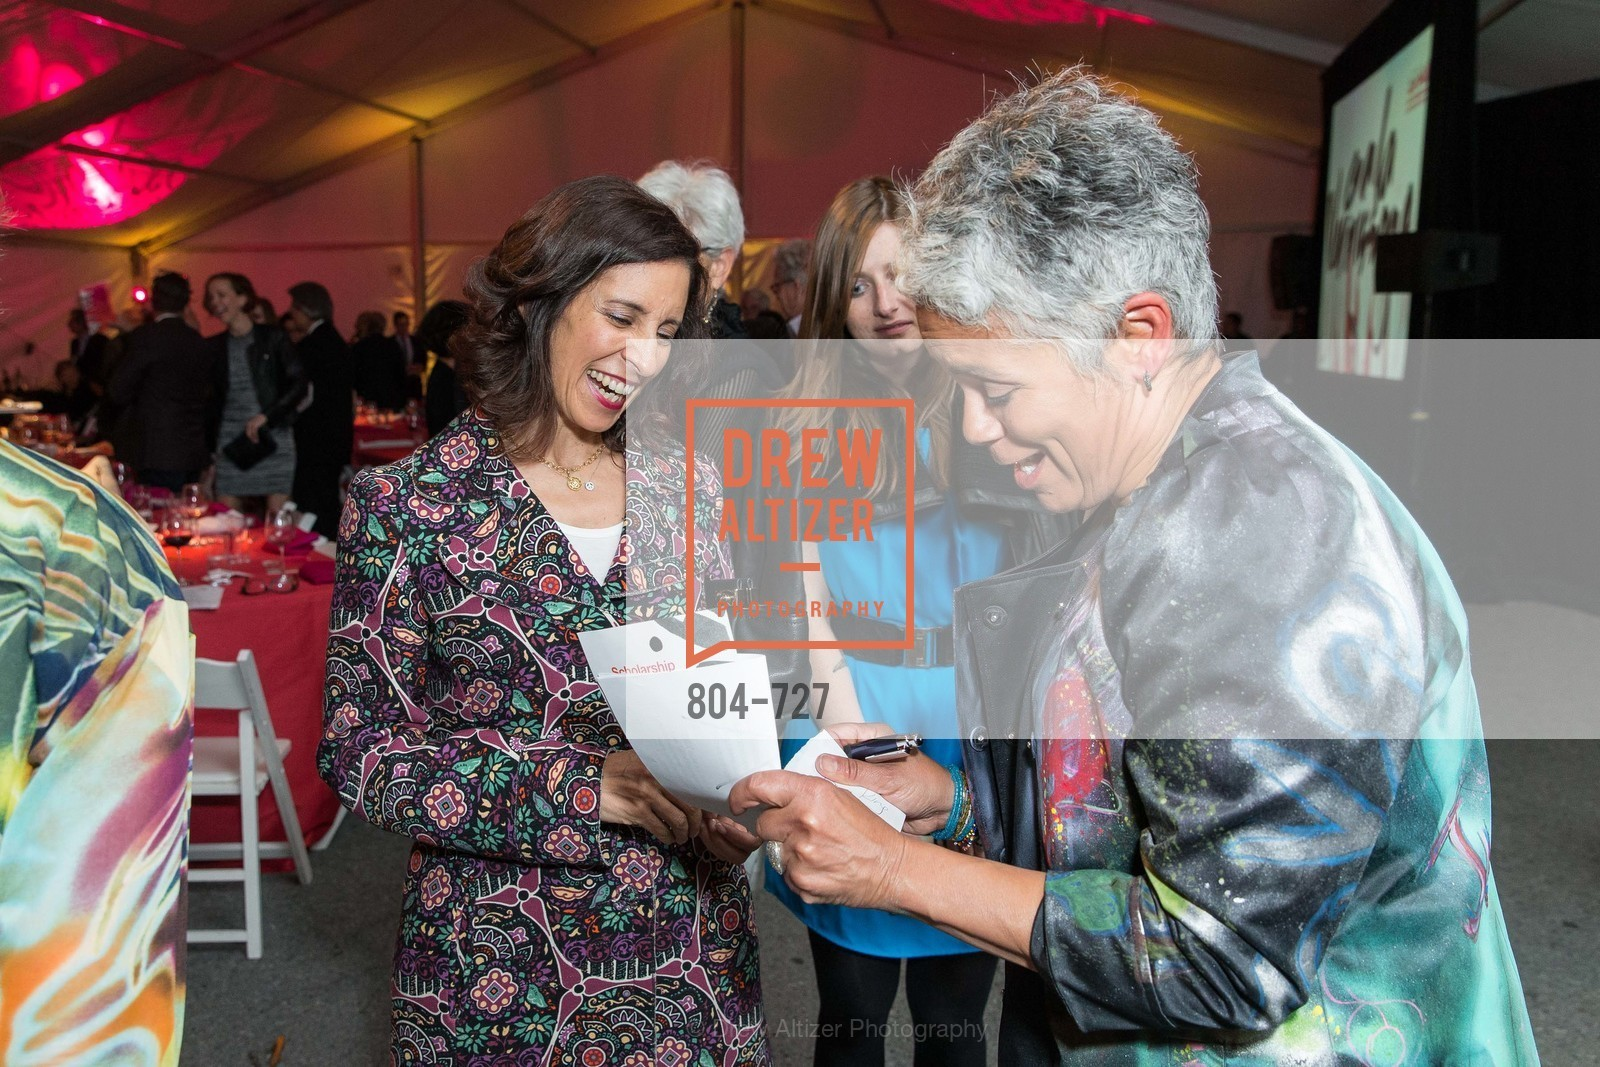 Darian Swig, Dana King, SAN FRANCISCO ART INSTITUTE Gala Honoring Art Visionary and Advocate ROSELYNE CHROMAN SWIG, US, May 13th, 2015,Drew Altizer, Drew Altizer Photography, full-service agency, private events, San Francisco photographer, photographer california